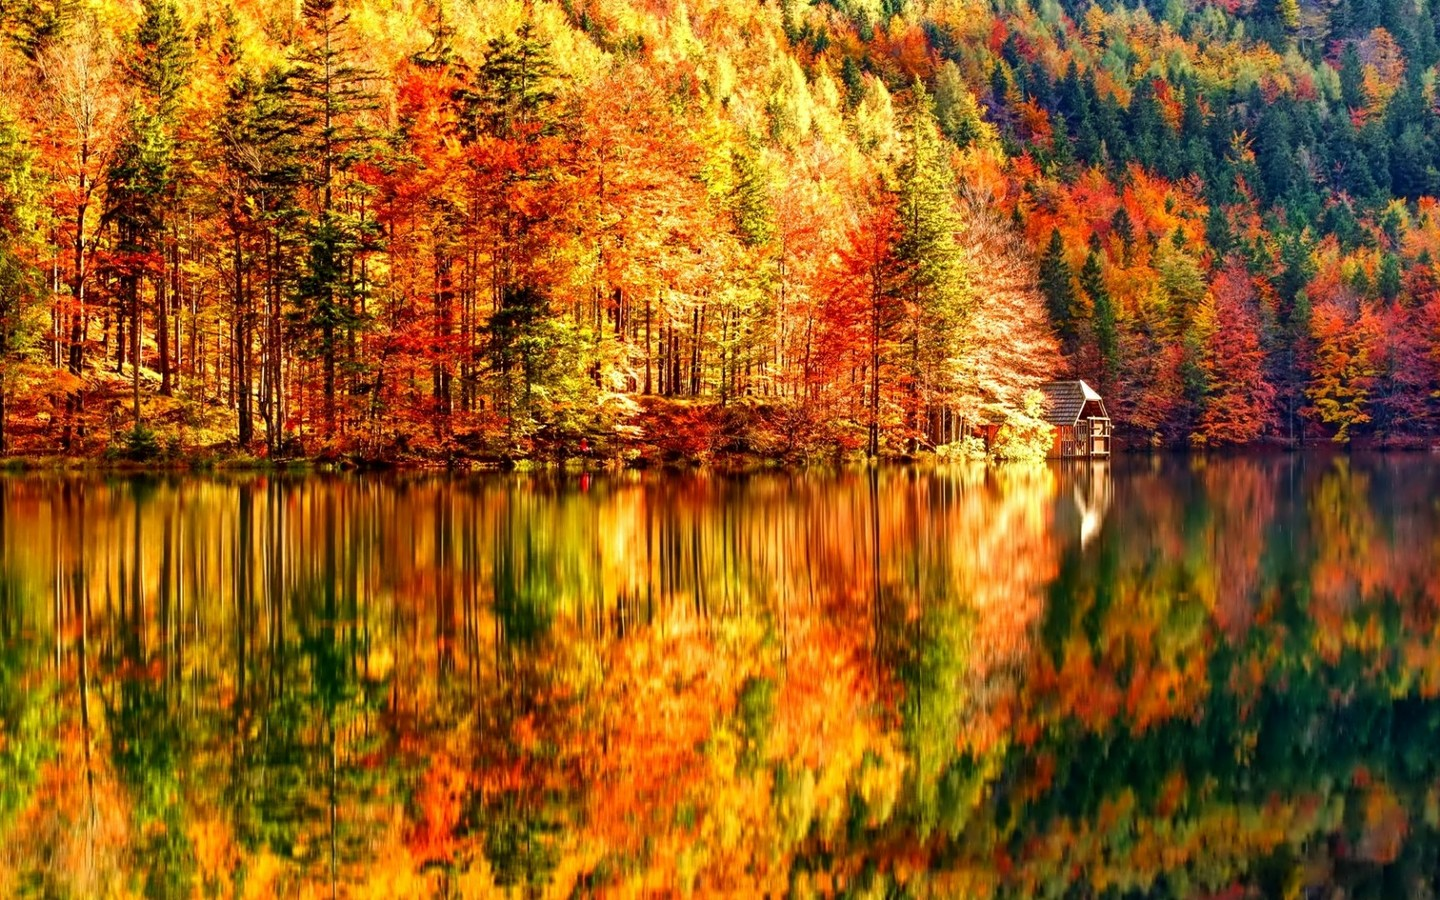 Splendid Autumn Wallpaper Wallpaper Studio  Tens of thousands